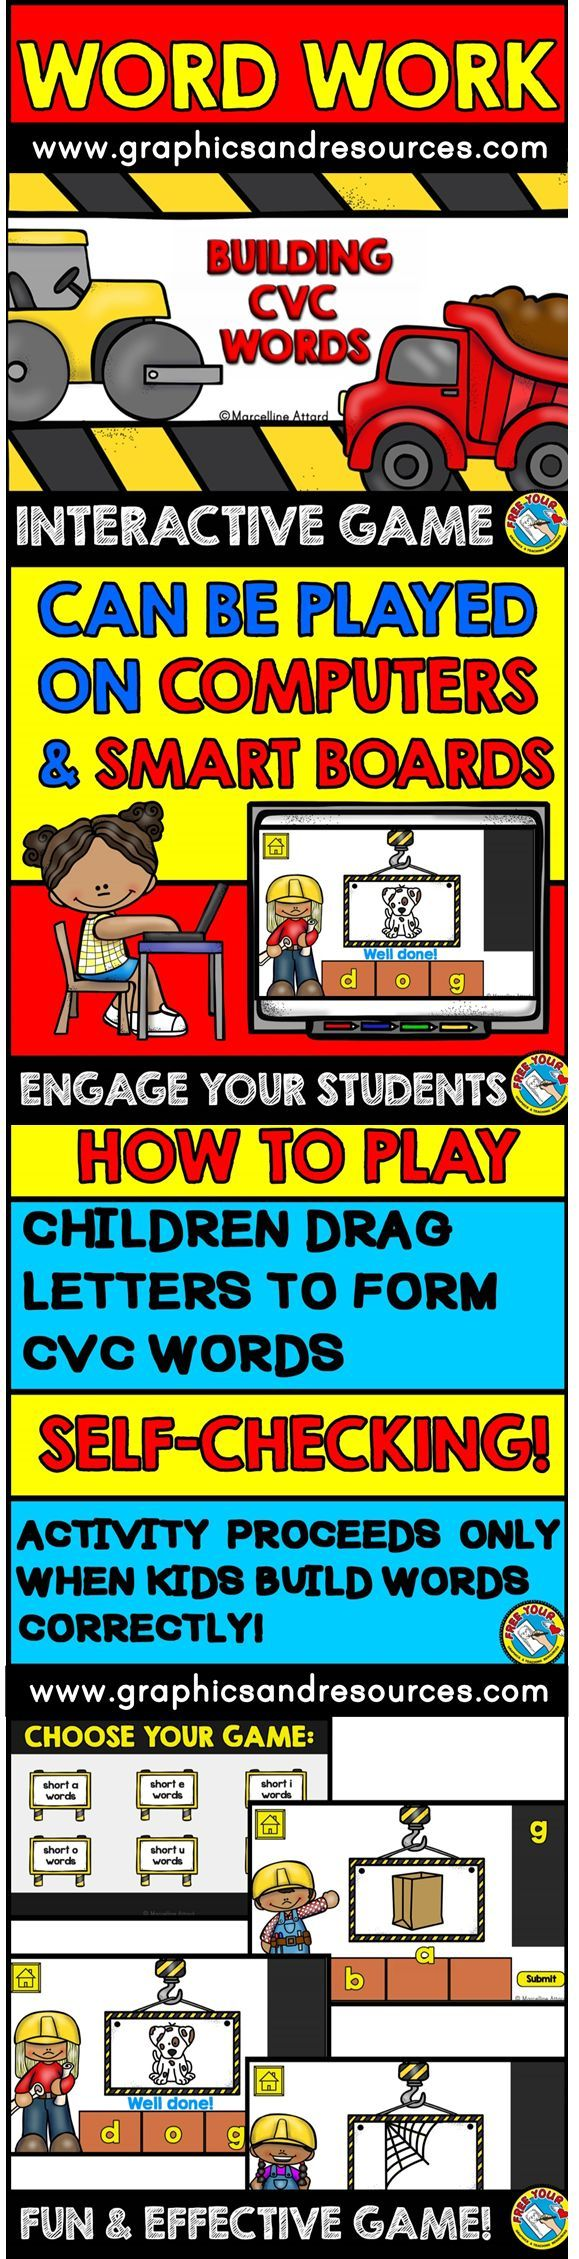 A simple and engaging game for children to practice building cvc words. This game is designed to be used on a computer or interactive whiteboard. Children drag letters onto the bricks to form the word for each cvc picture. Then they click on 'Submit' button to check if they formed the word correctly or not.  Click to view resource!